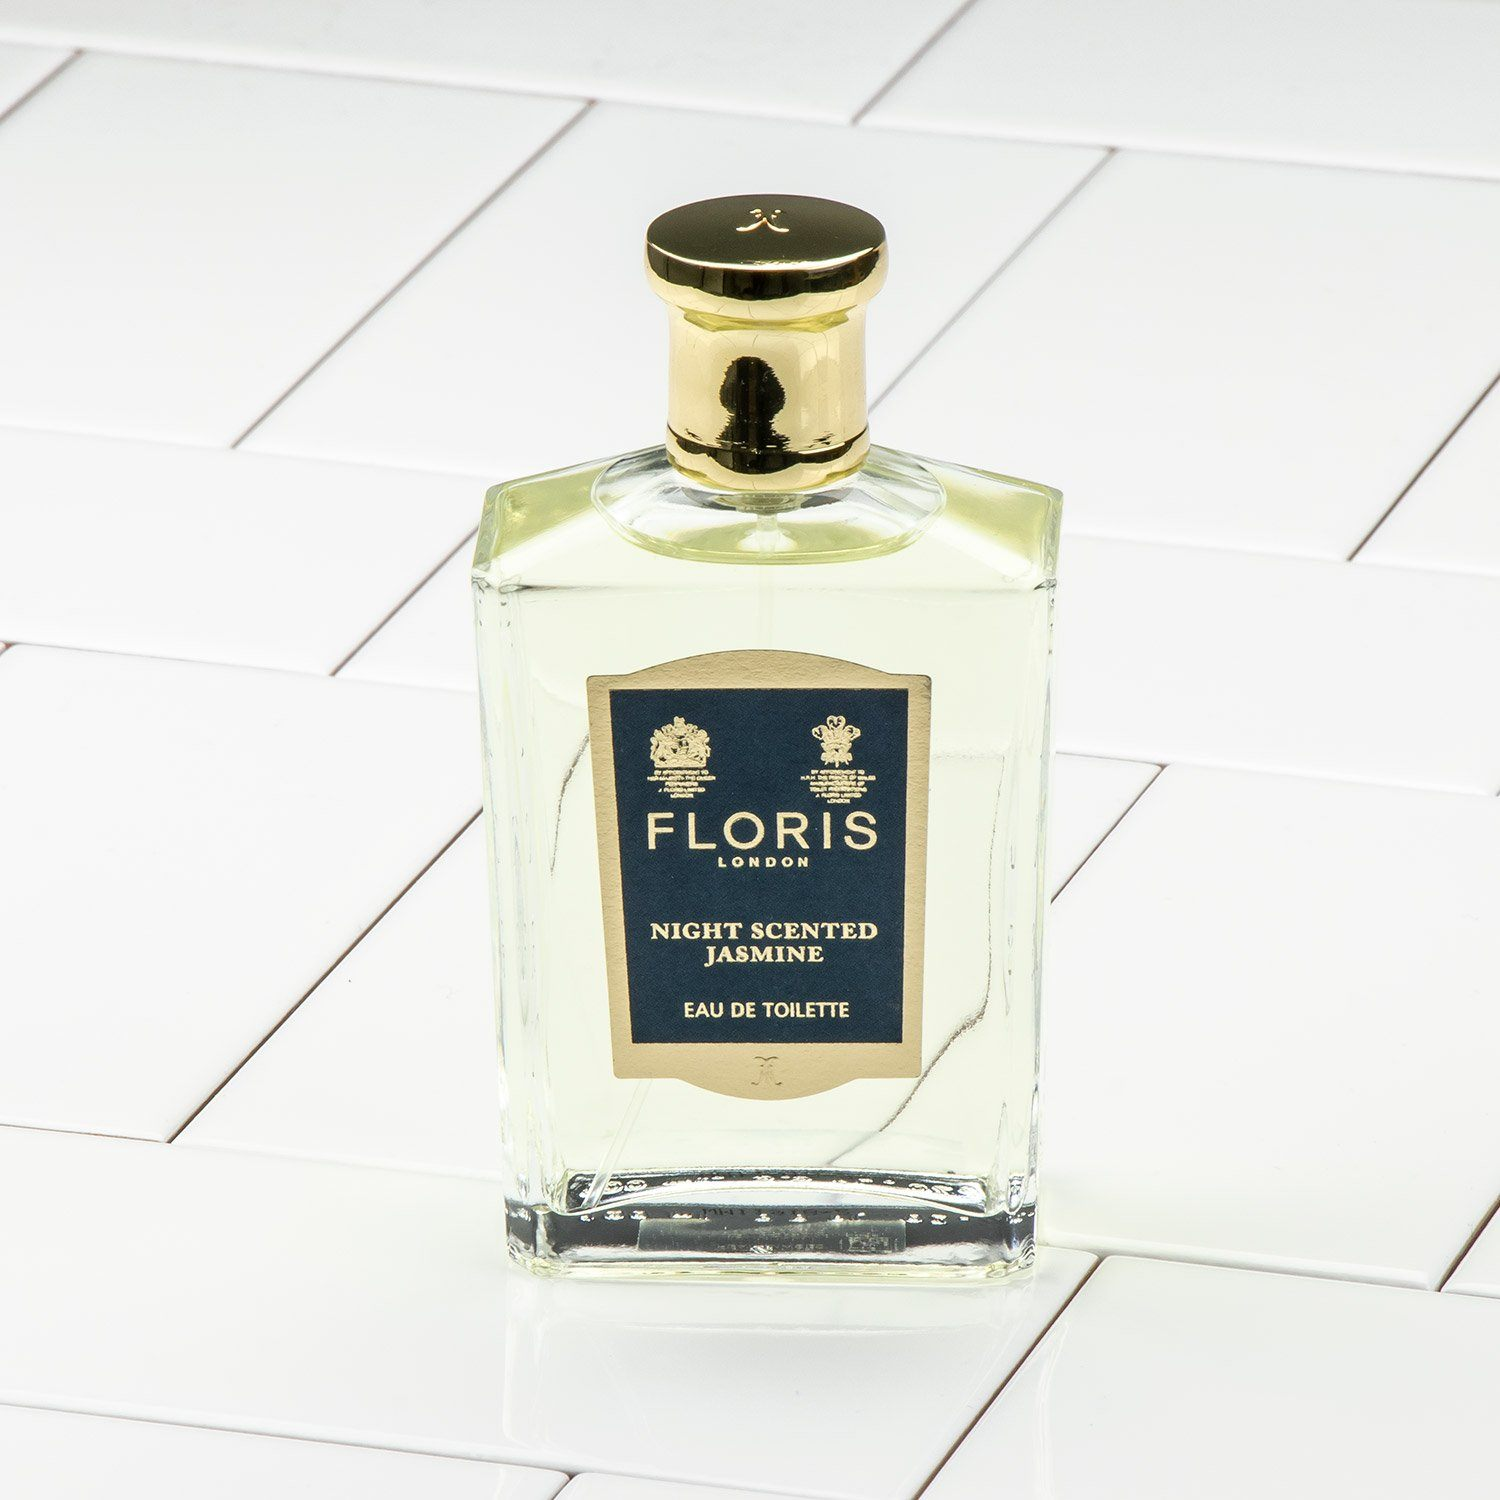 Floris Night Scented Jasmine Eau de Toilette